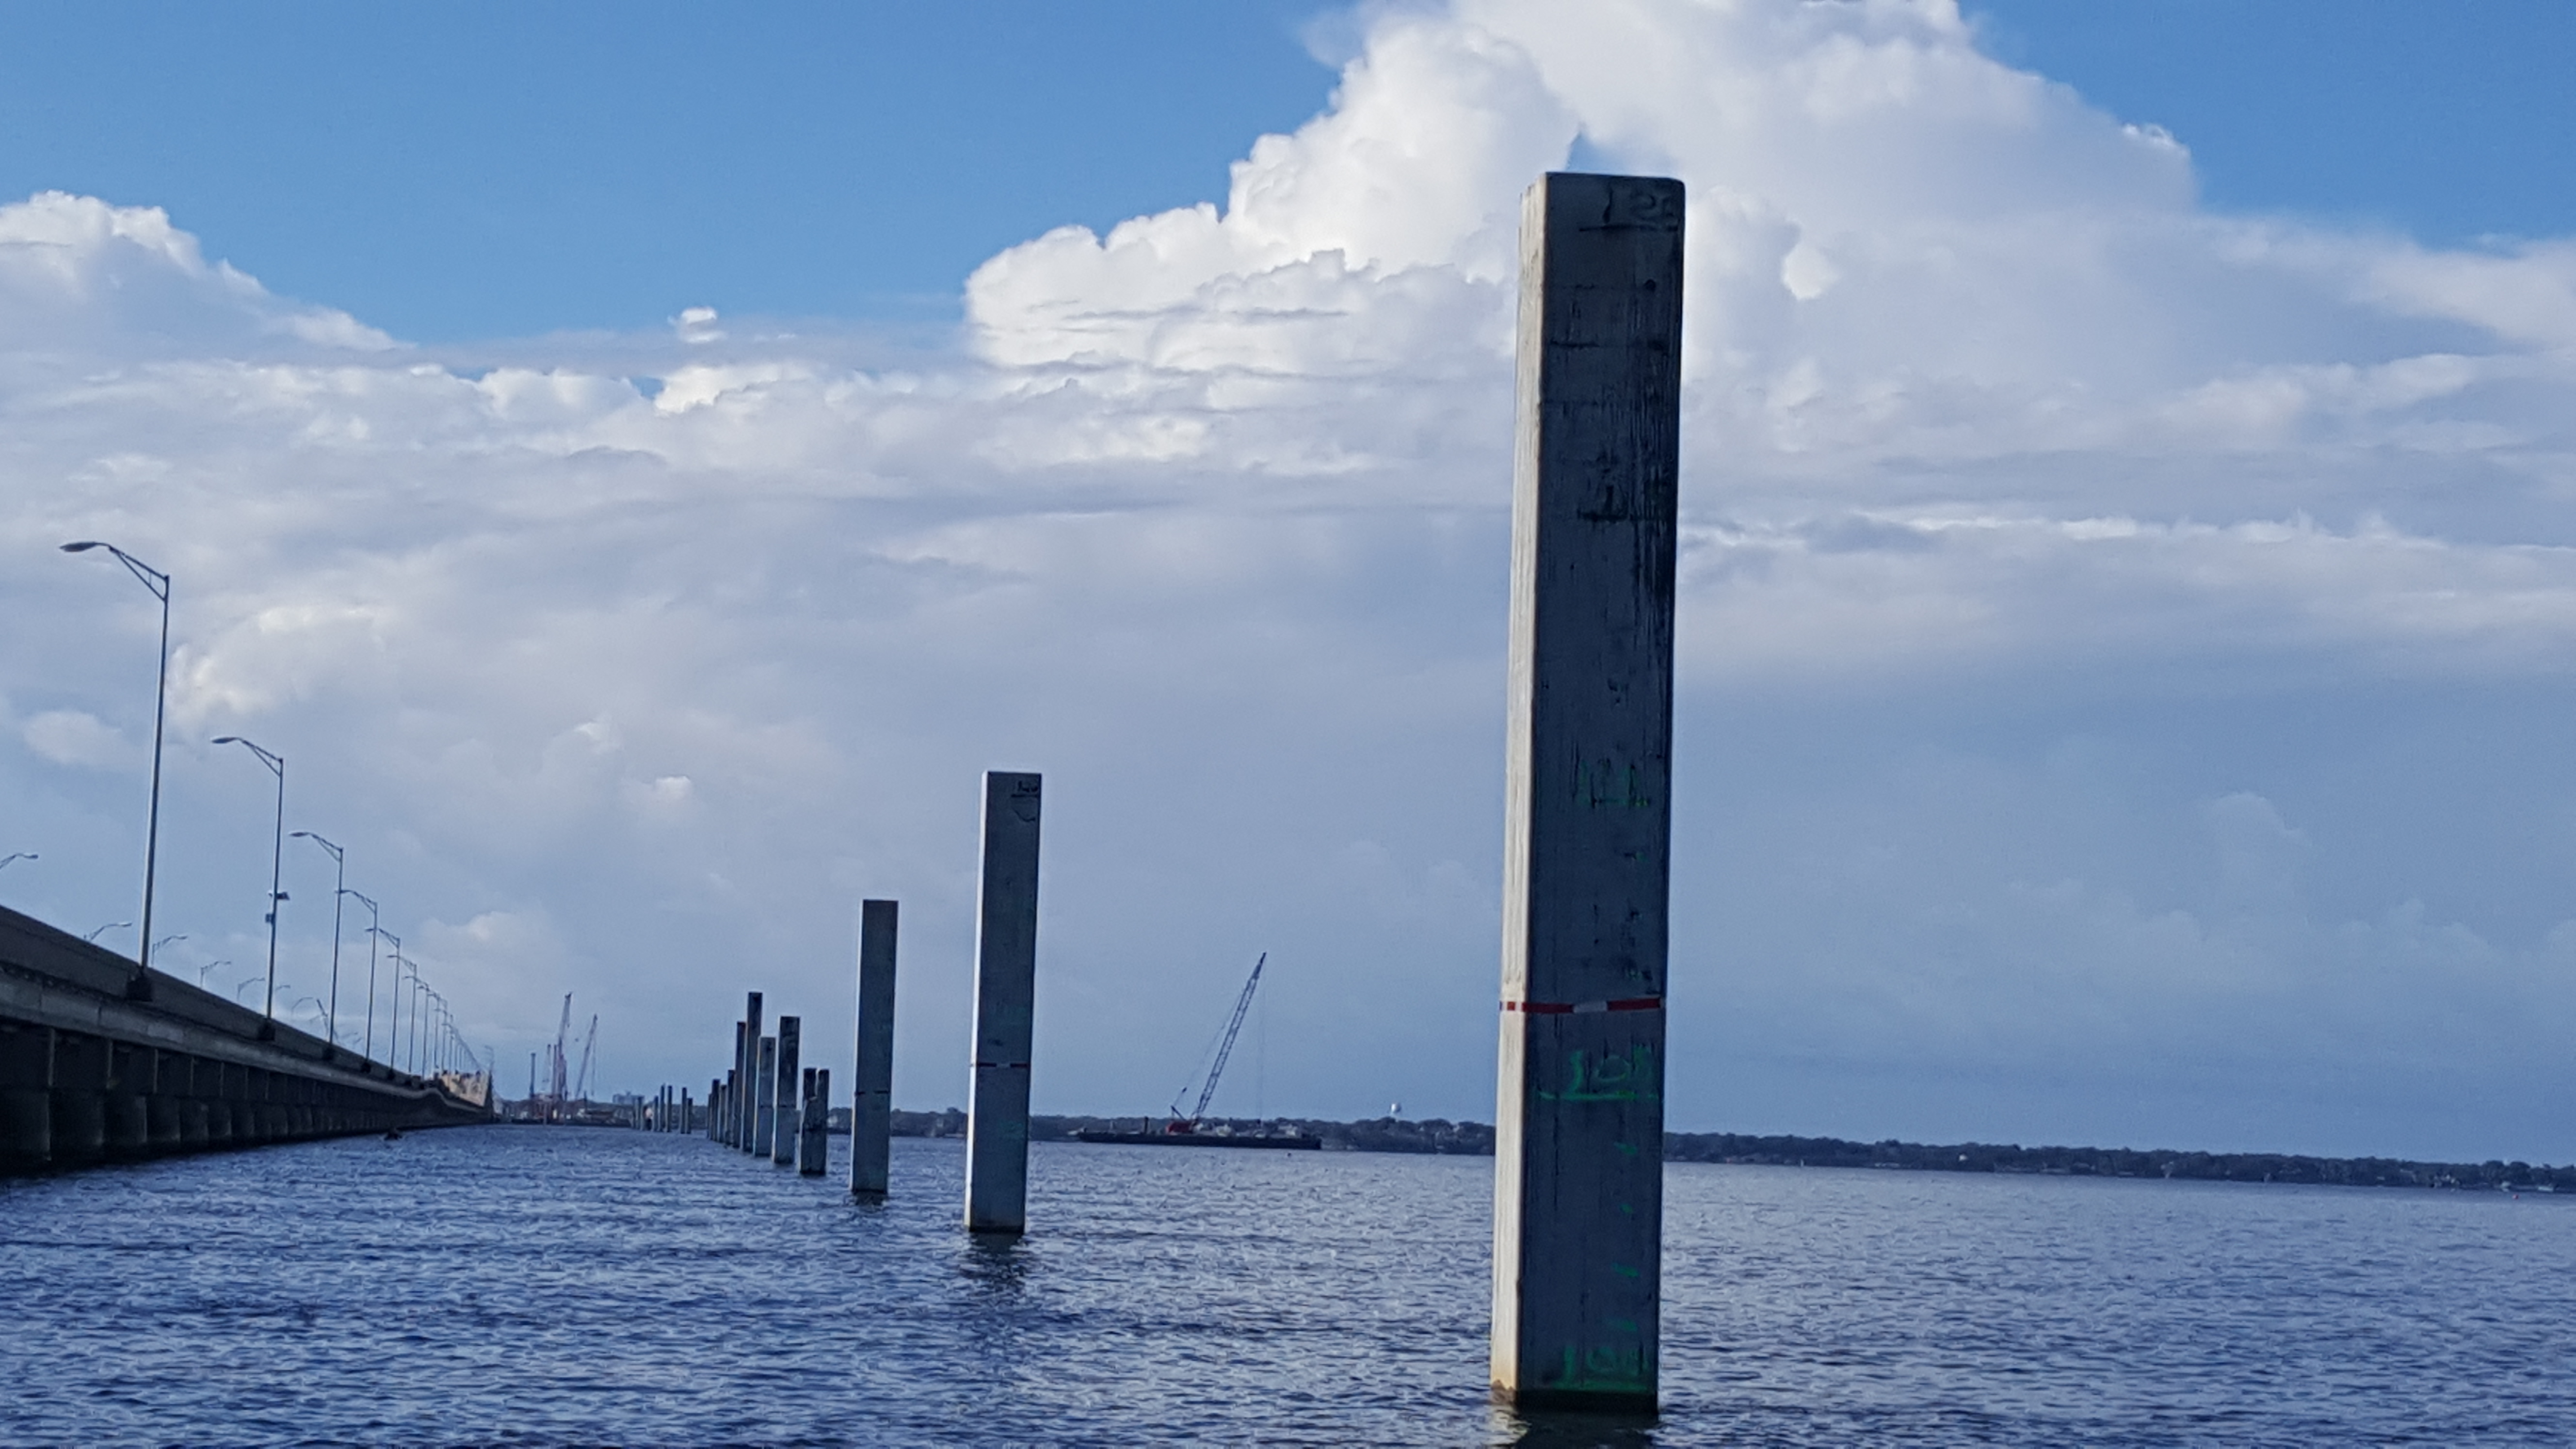 Pile driving work continuing in Pensacola Bay